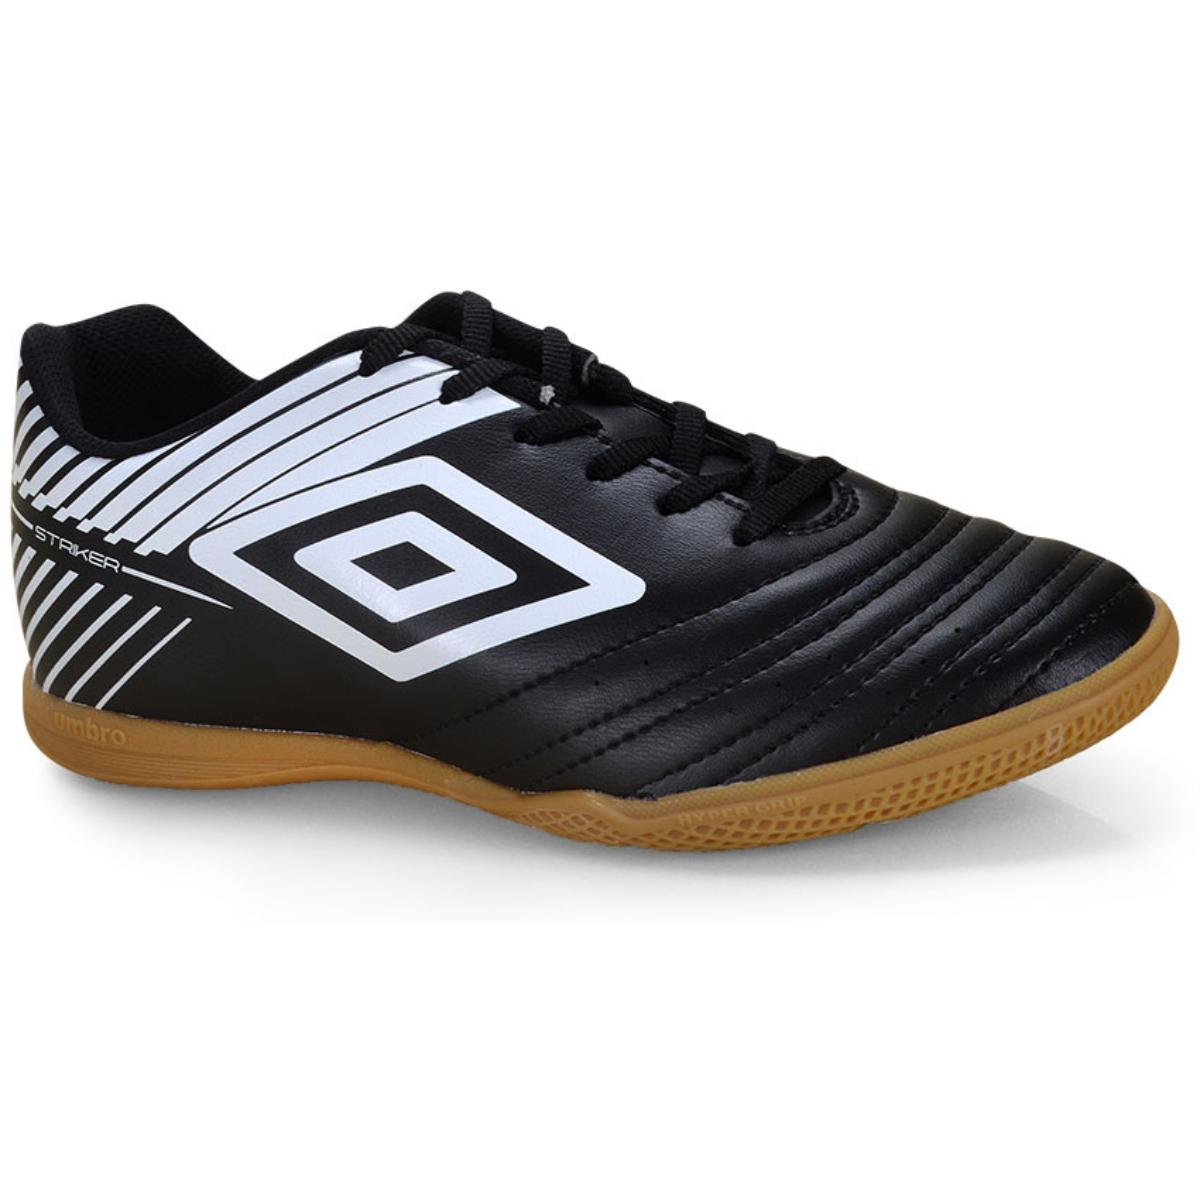 Tênis Masculino Of72124.112 Indoor Umbro Stricker v Preto/branco